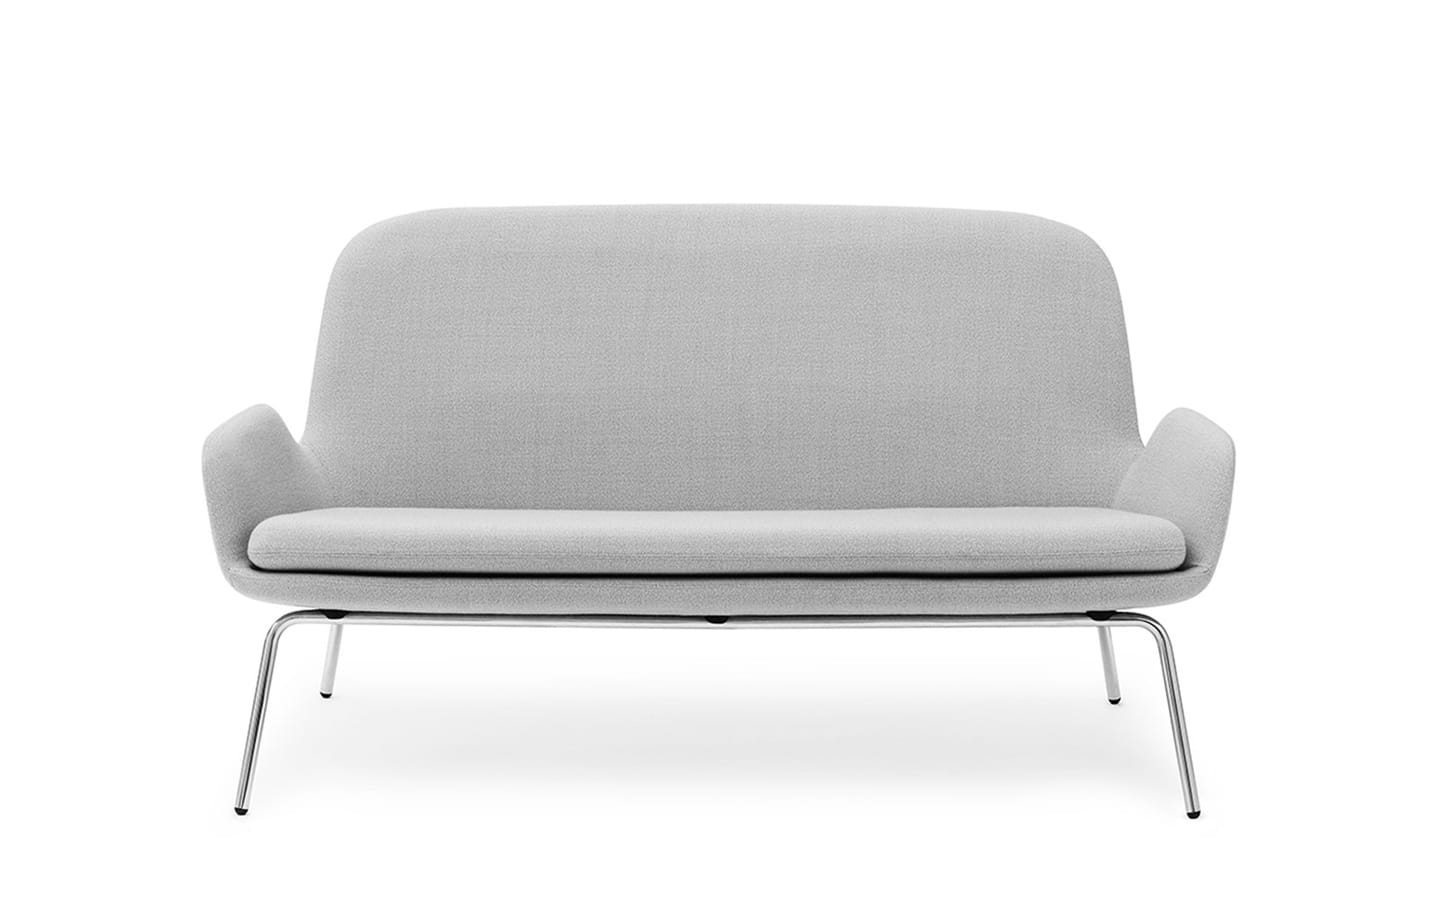 Sofa era chrom tango leather normann copenhagen for Piccoli divani